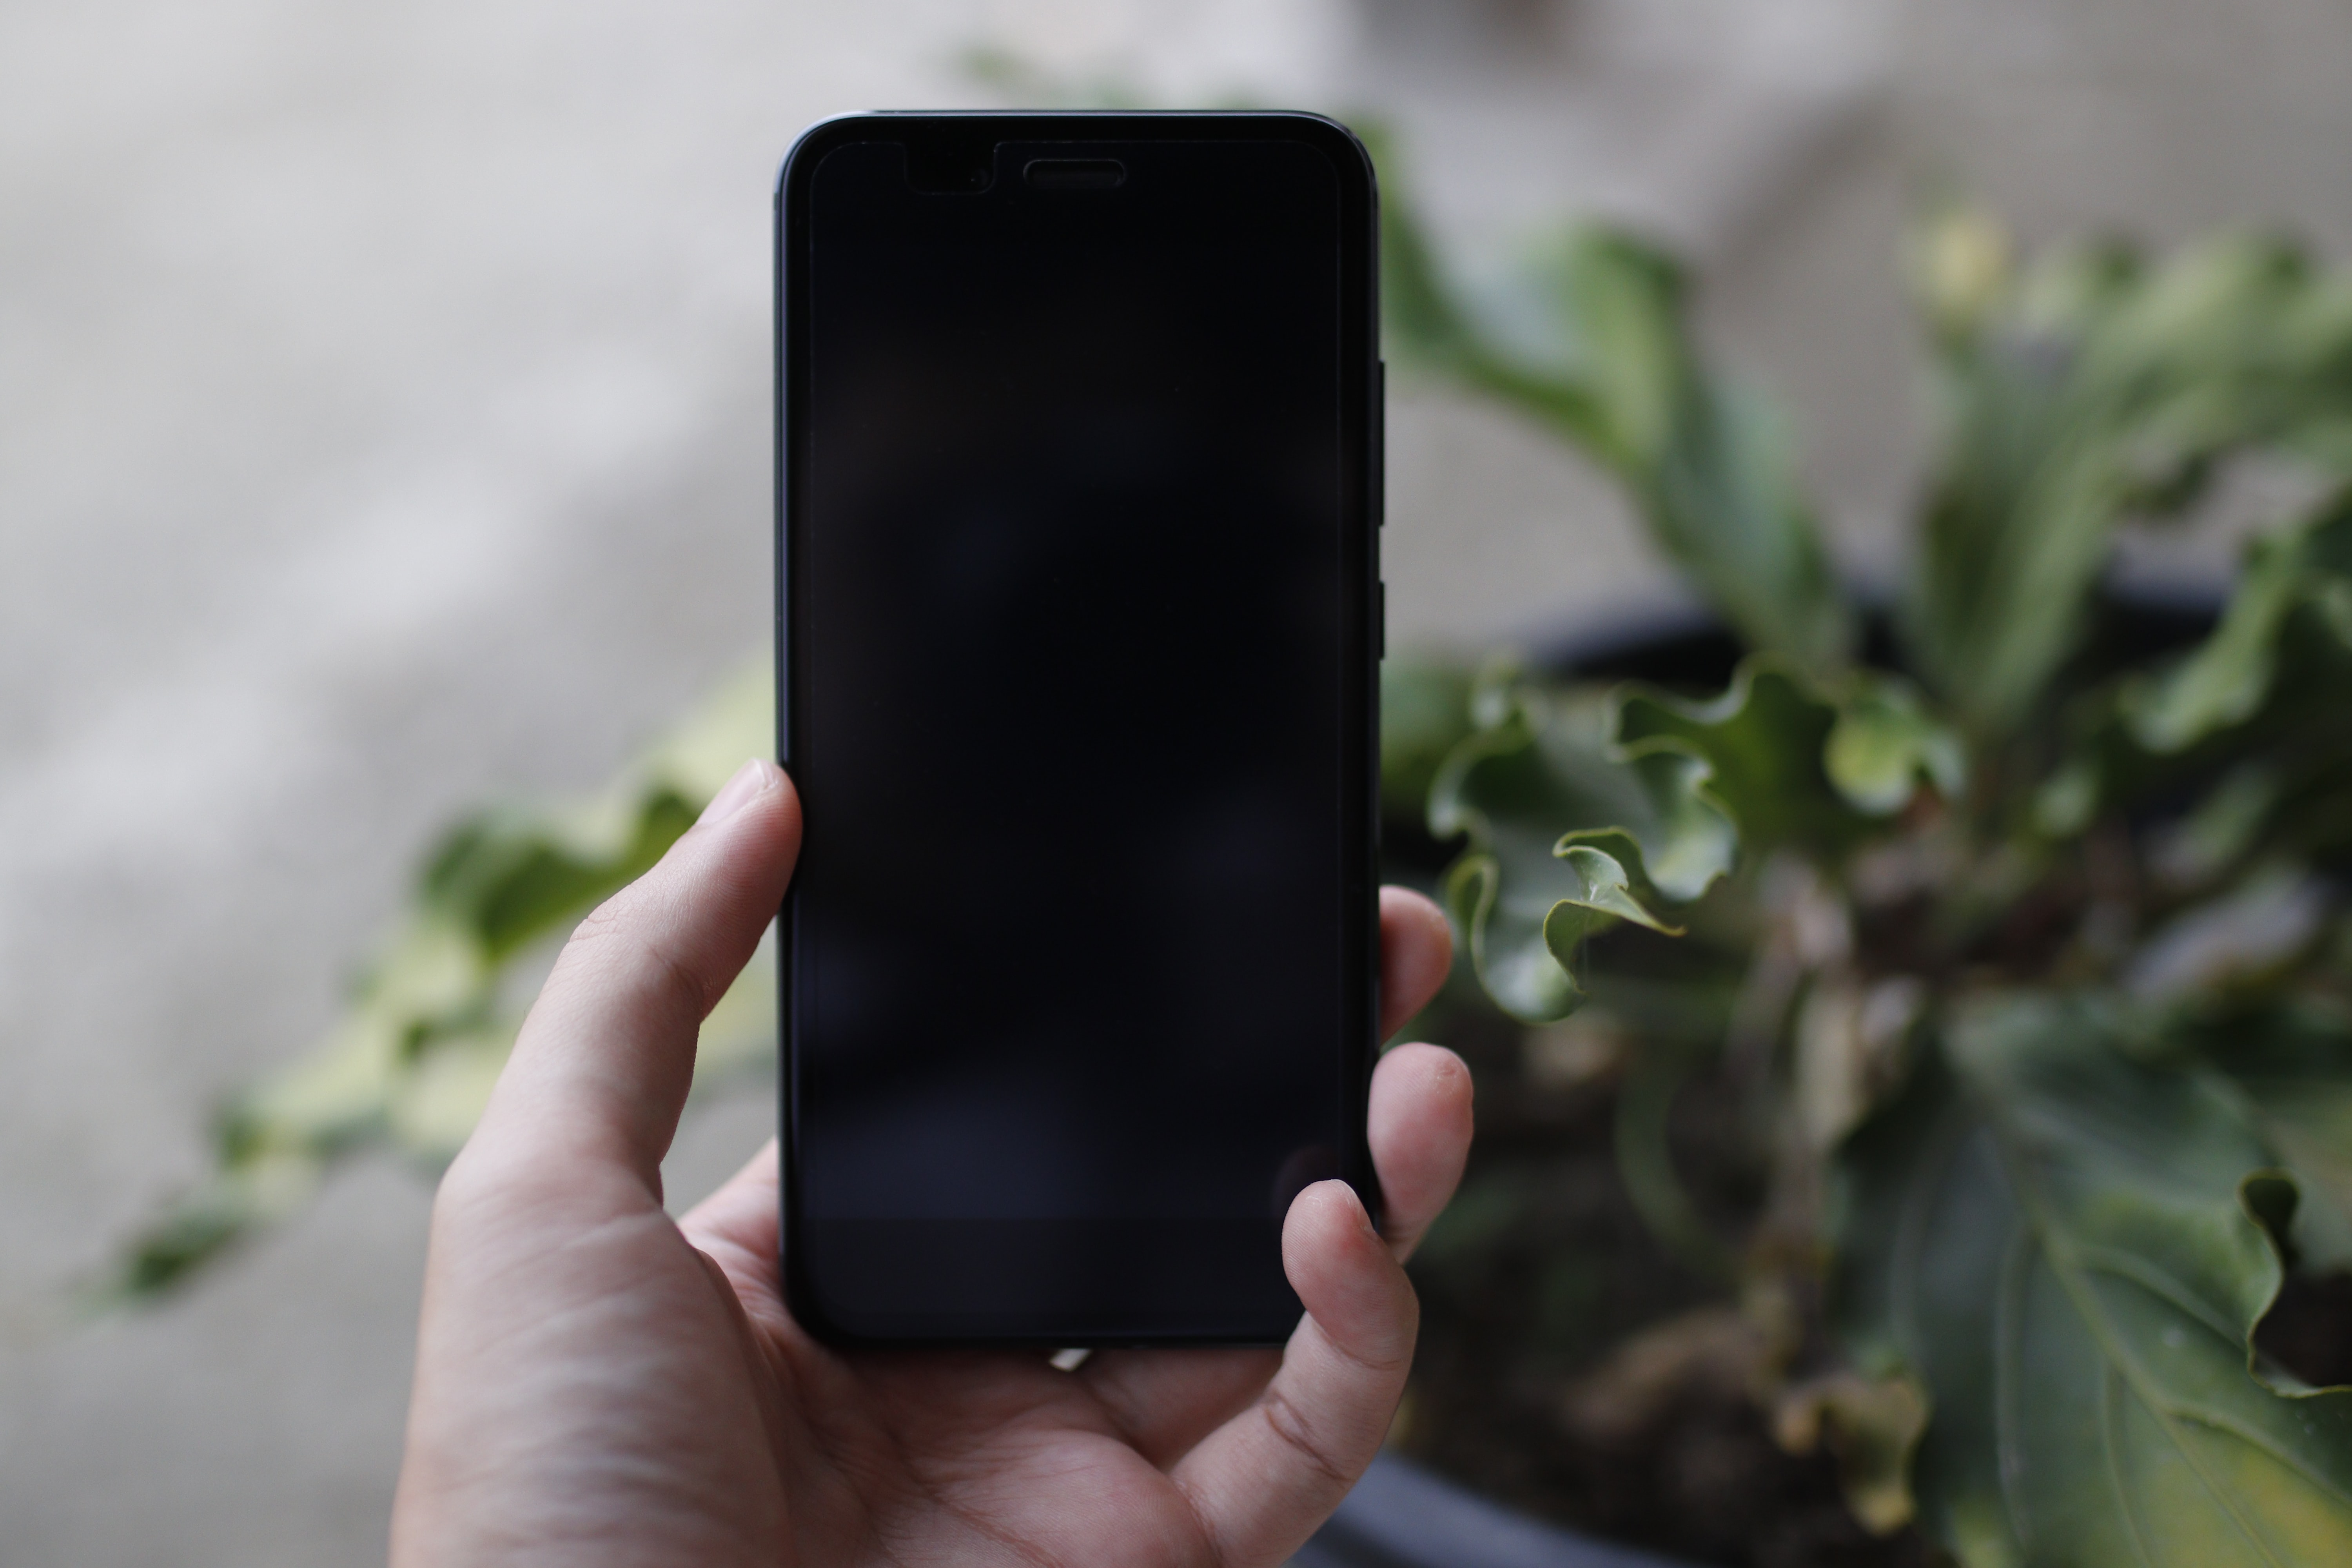 person holding turned off black smartphone